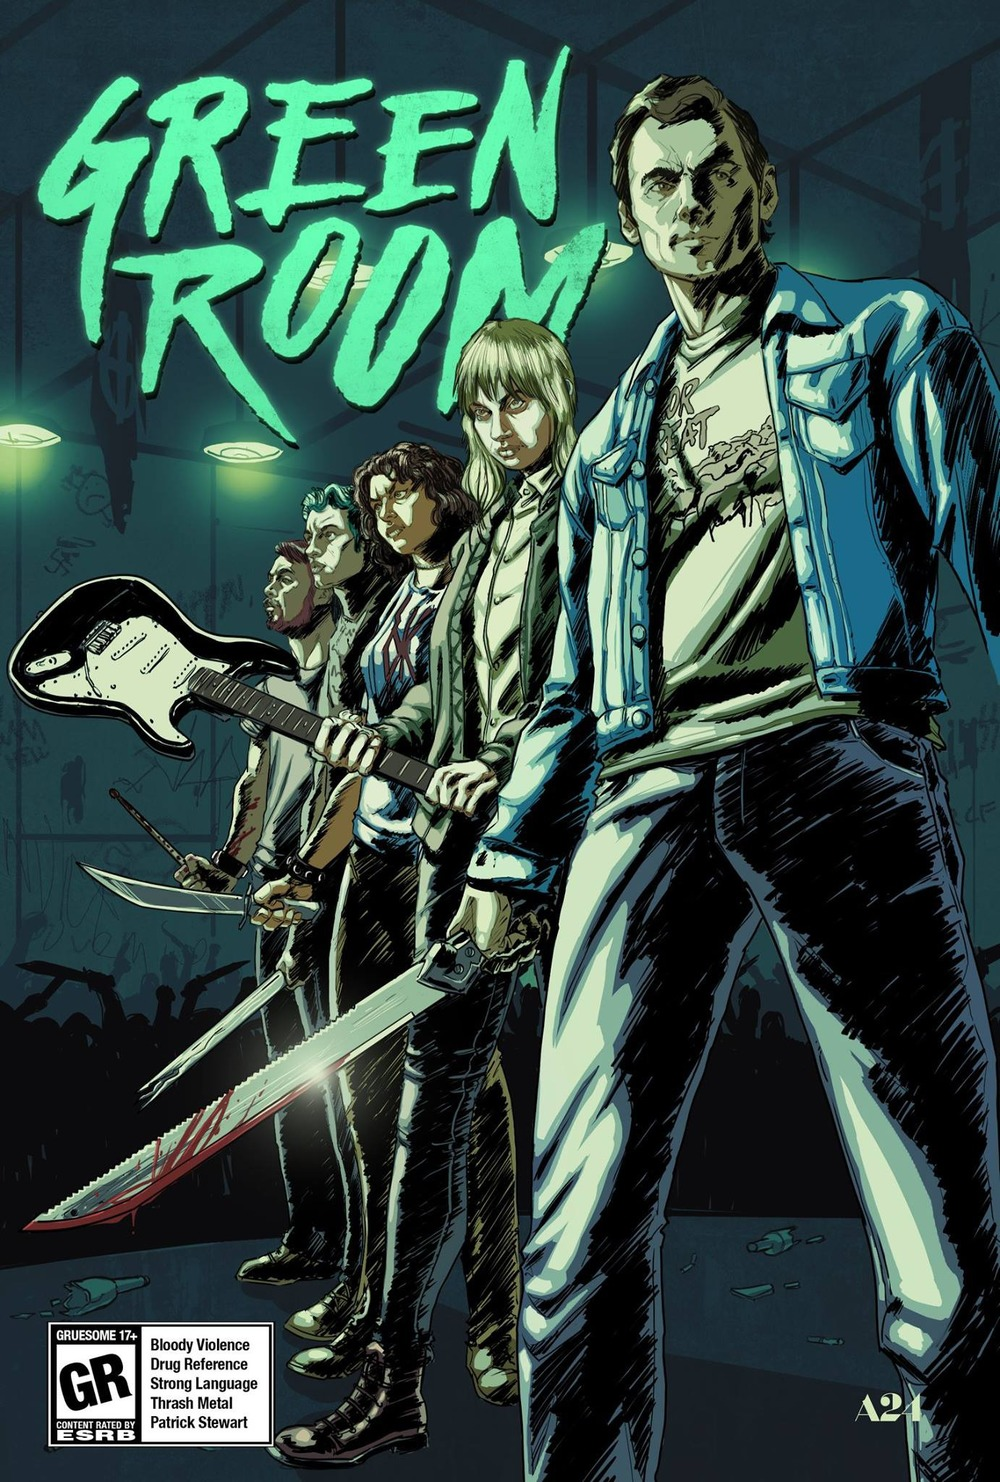 Green Room Film Poster